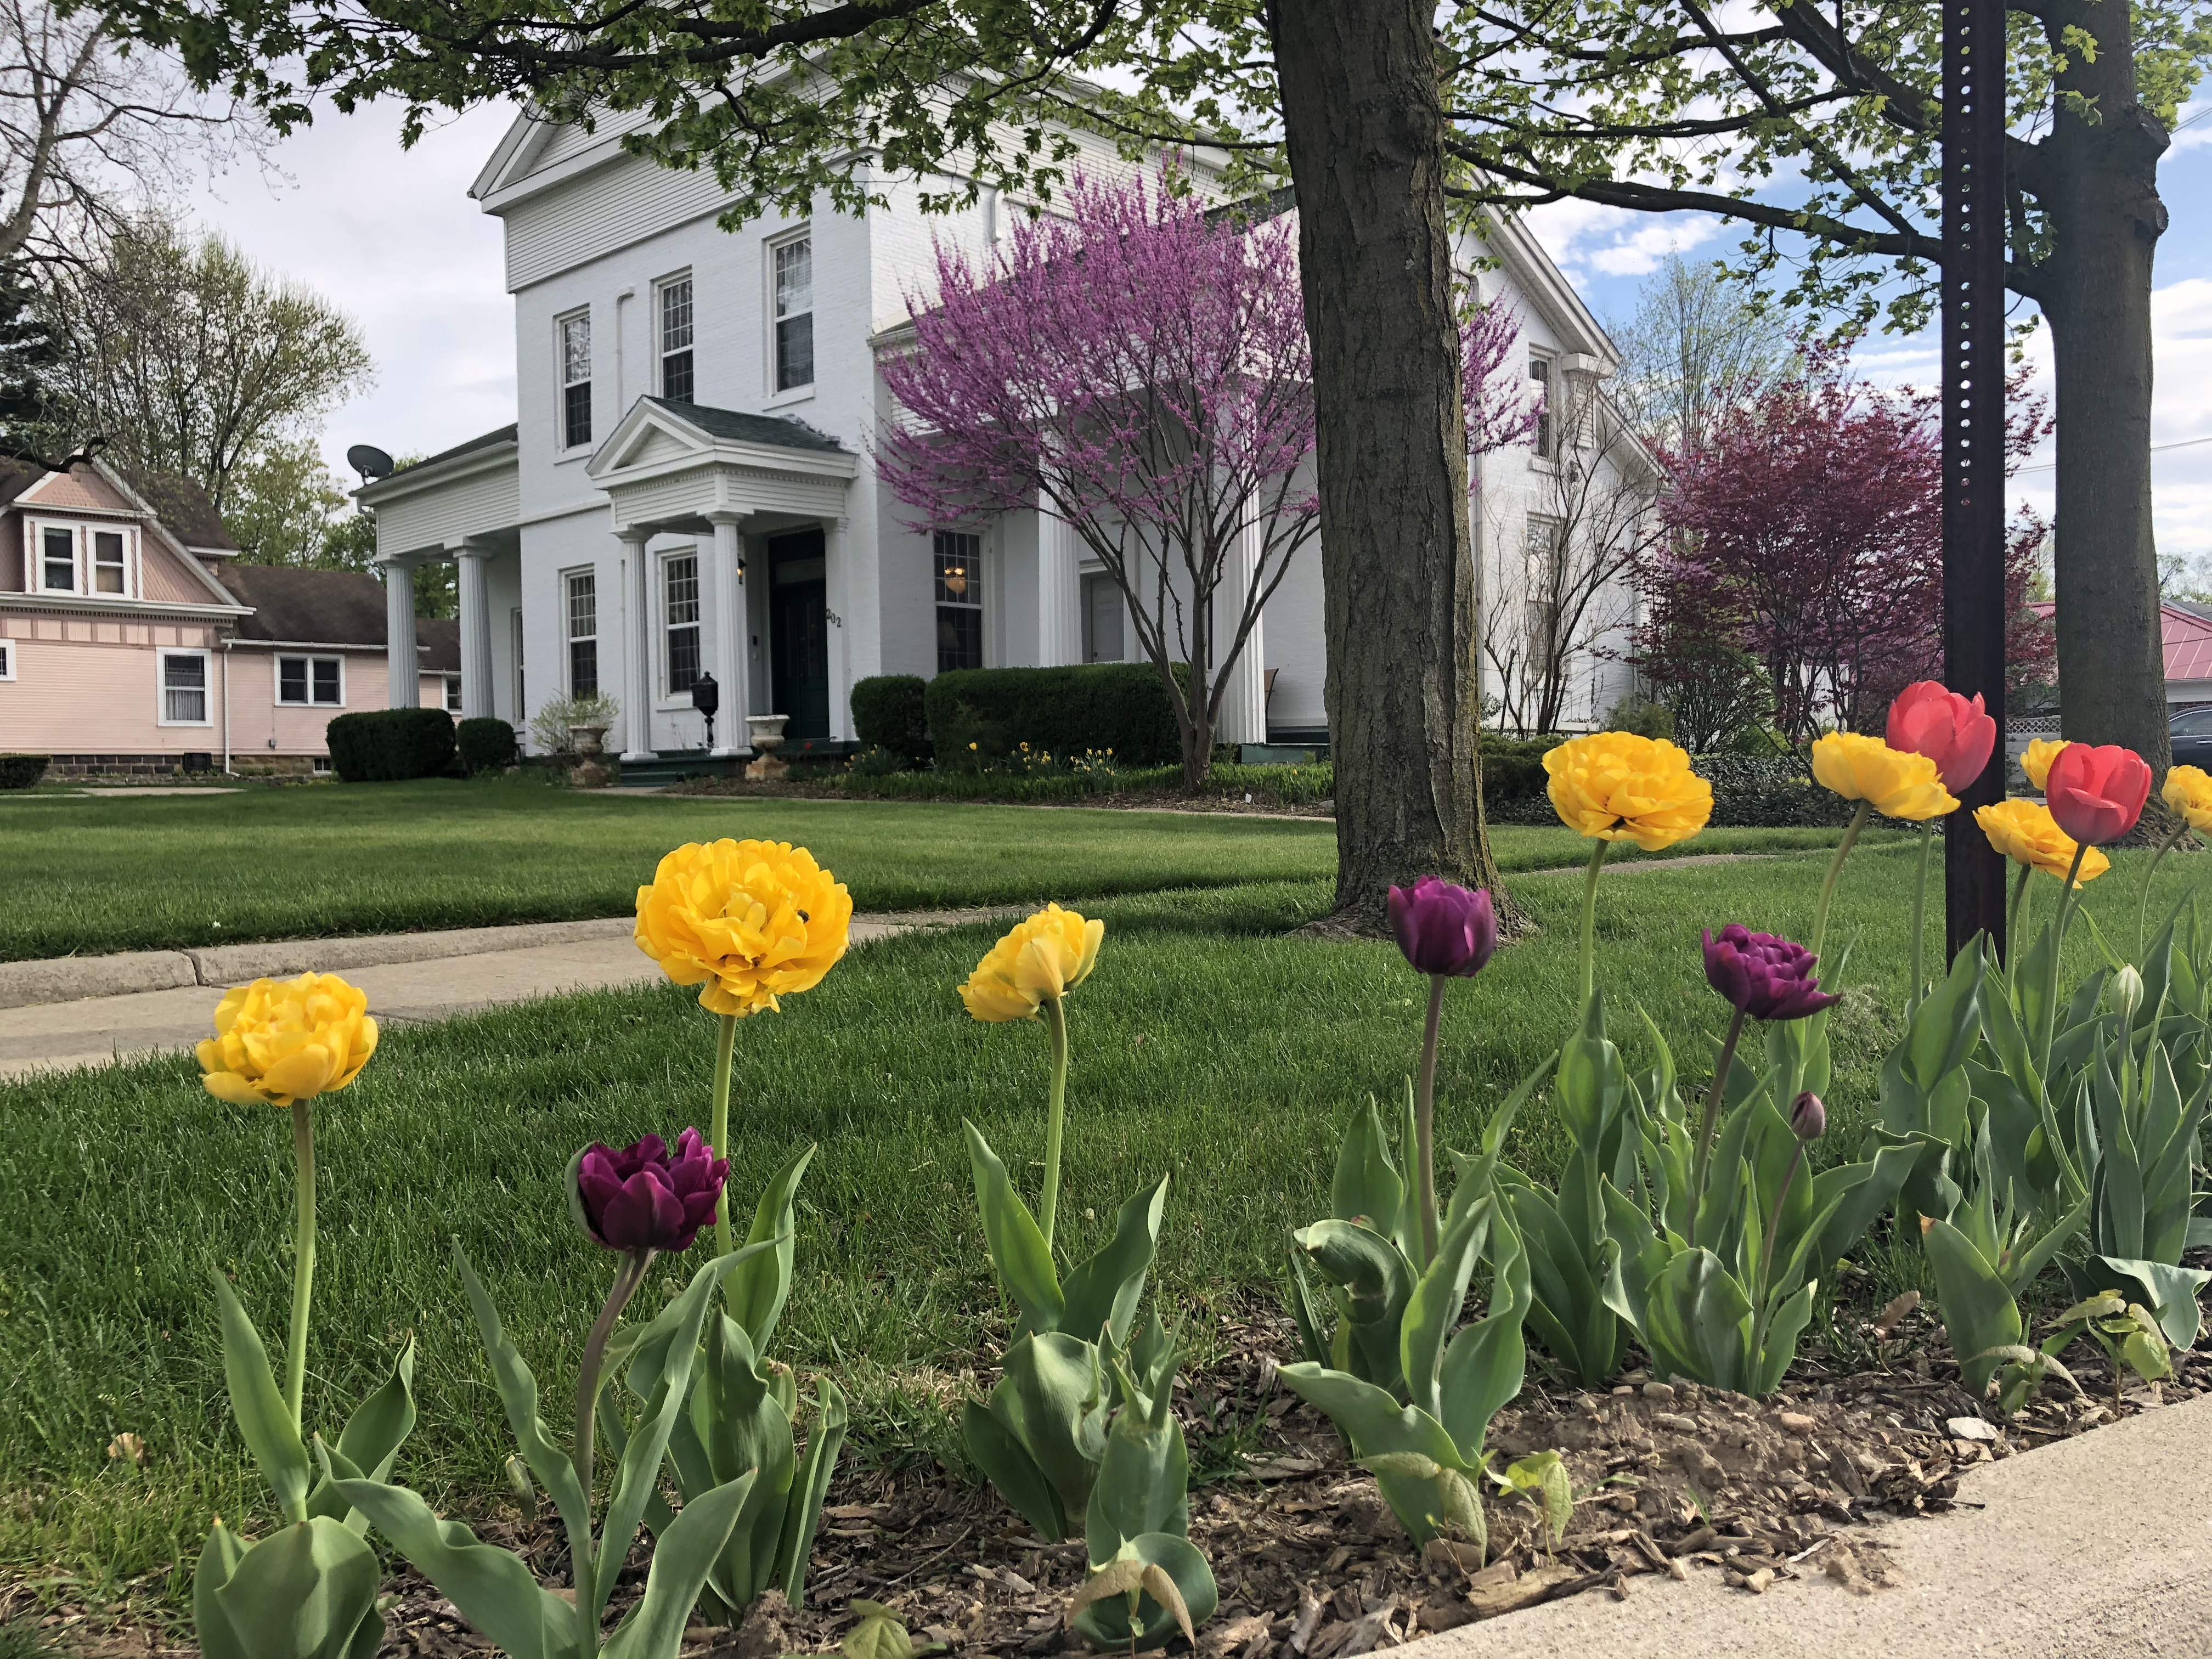 yellow , red, and purple tulips in front of white greek revival style home